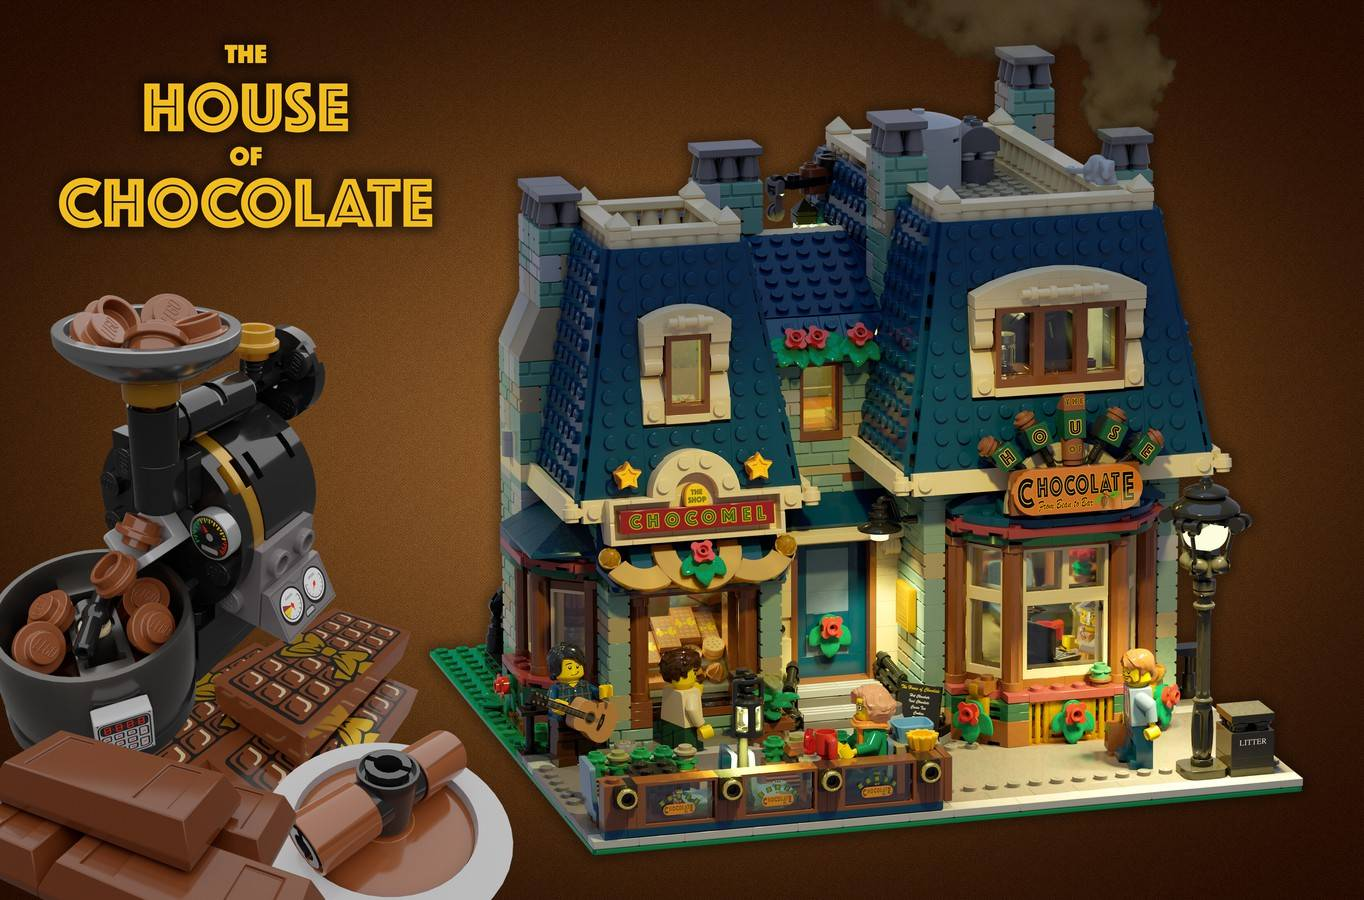 The house of chocolate